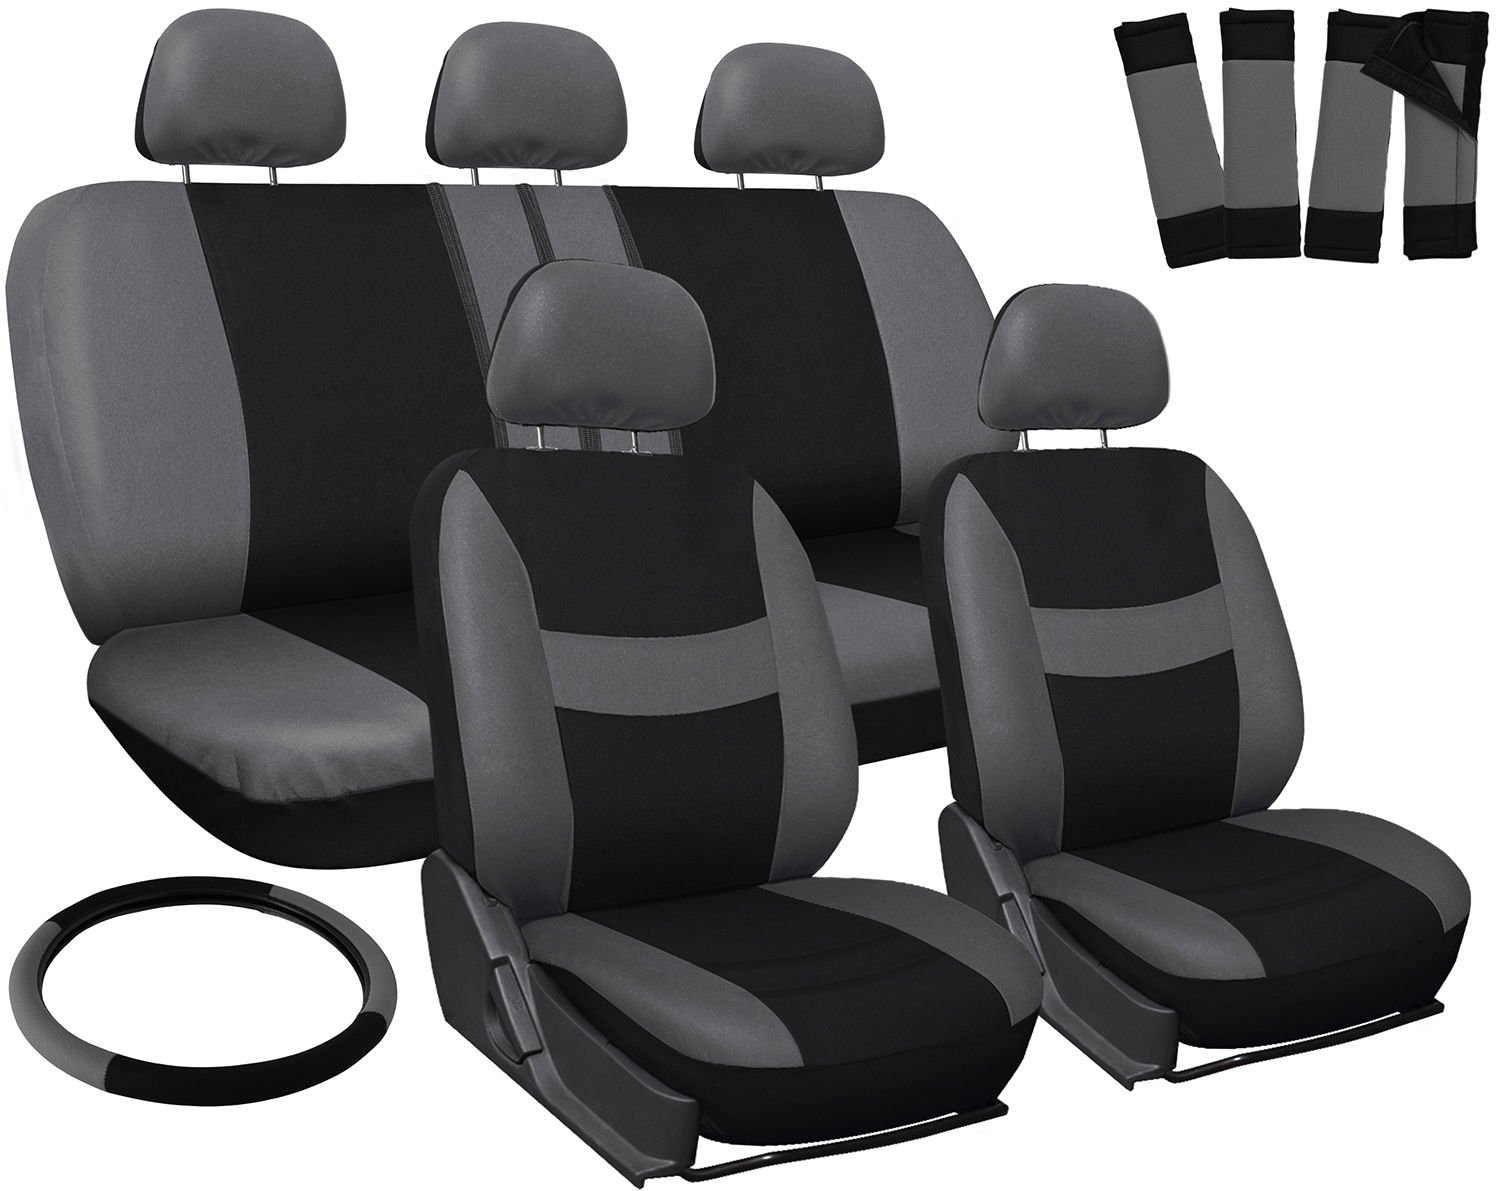 New Car Seat Covers for Ford Focus Gray Black w/ Steering Wheel-Belt Pads-Head Rests